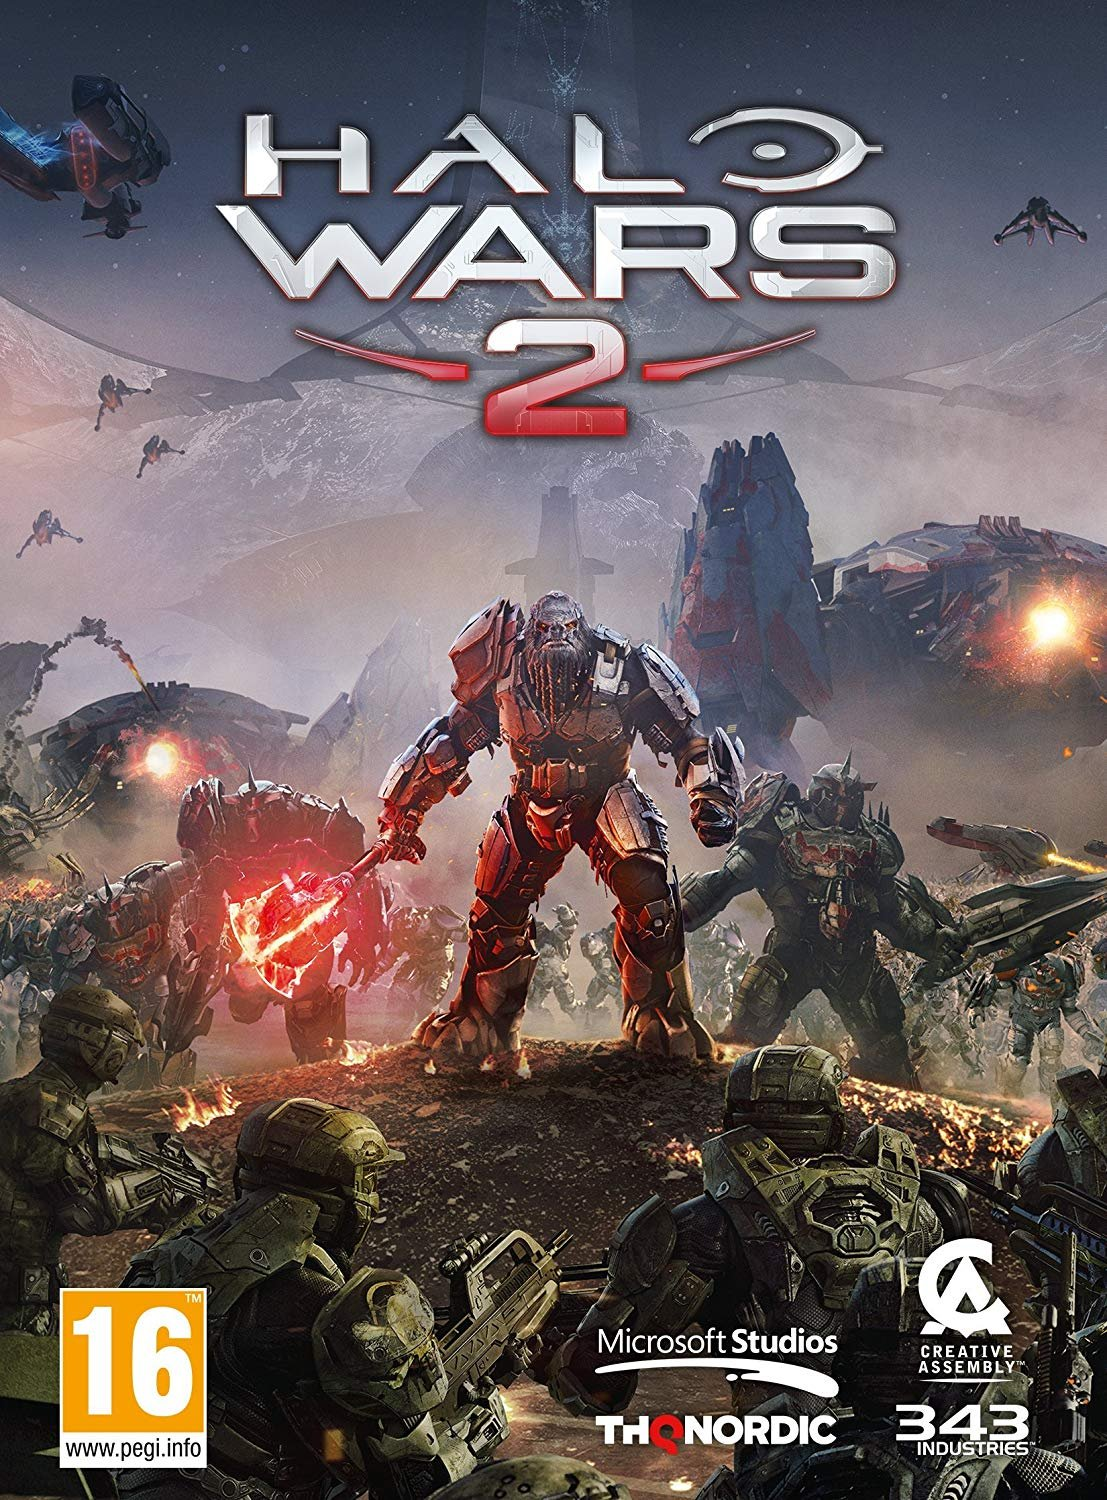 Halo Wars 2 Key (XBOX One / Windows 10)